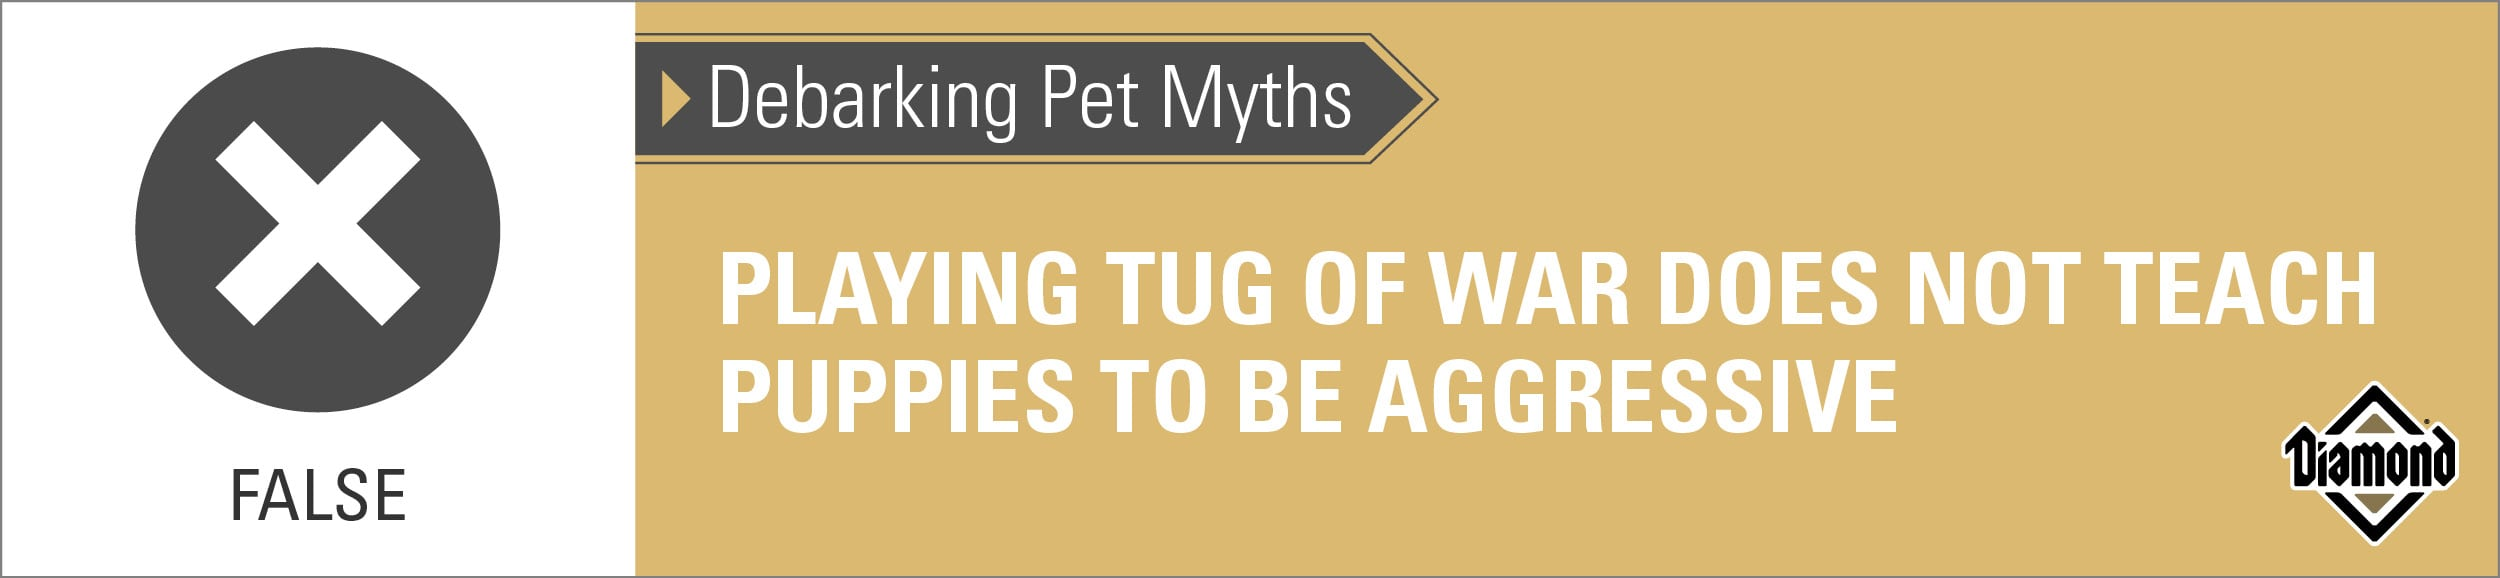 False: Playing Tug of War Properly Does Not Teach Puppies to Be Aggressive | Diamond Pet Foods